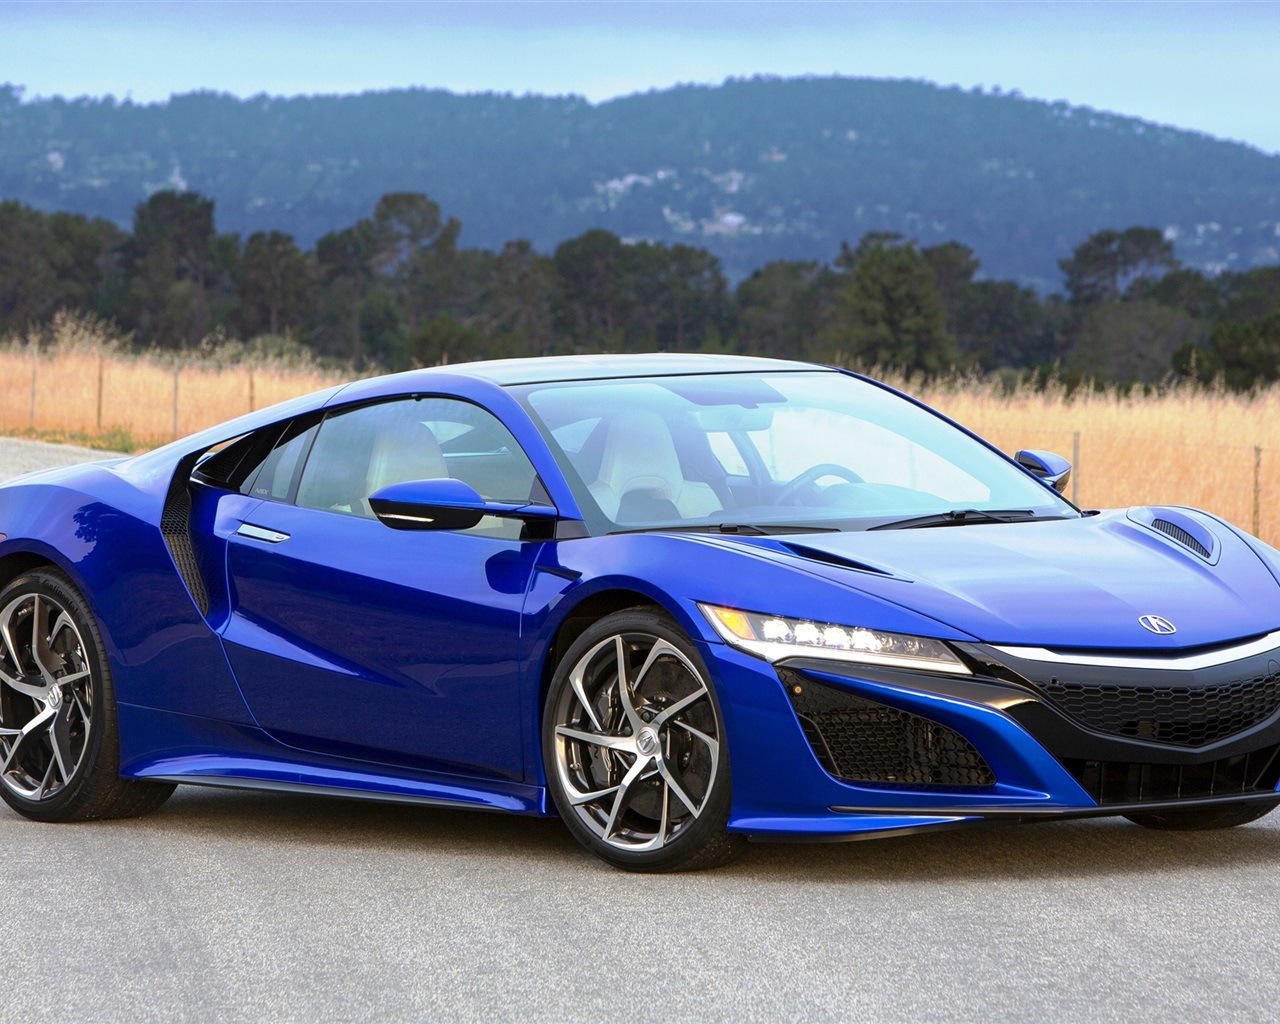 NSX blue luxury supercar Wallpaper 1280x1024 resolution wallpaper 1280x1024